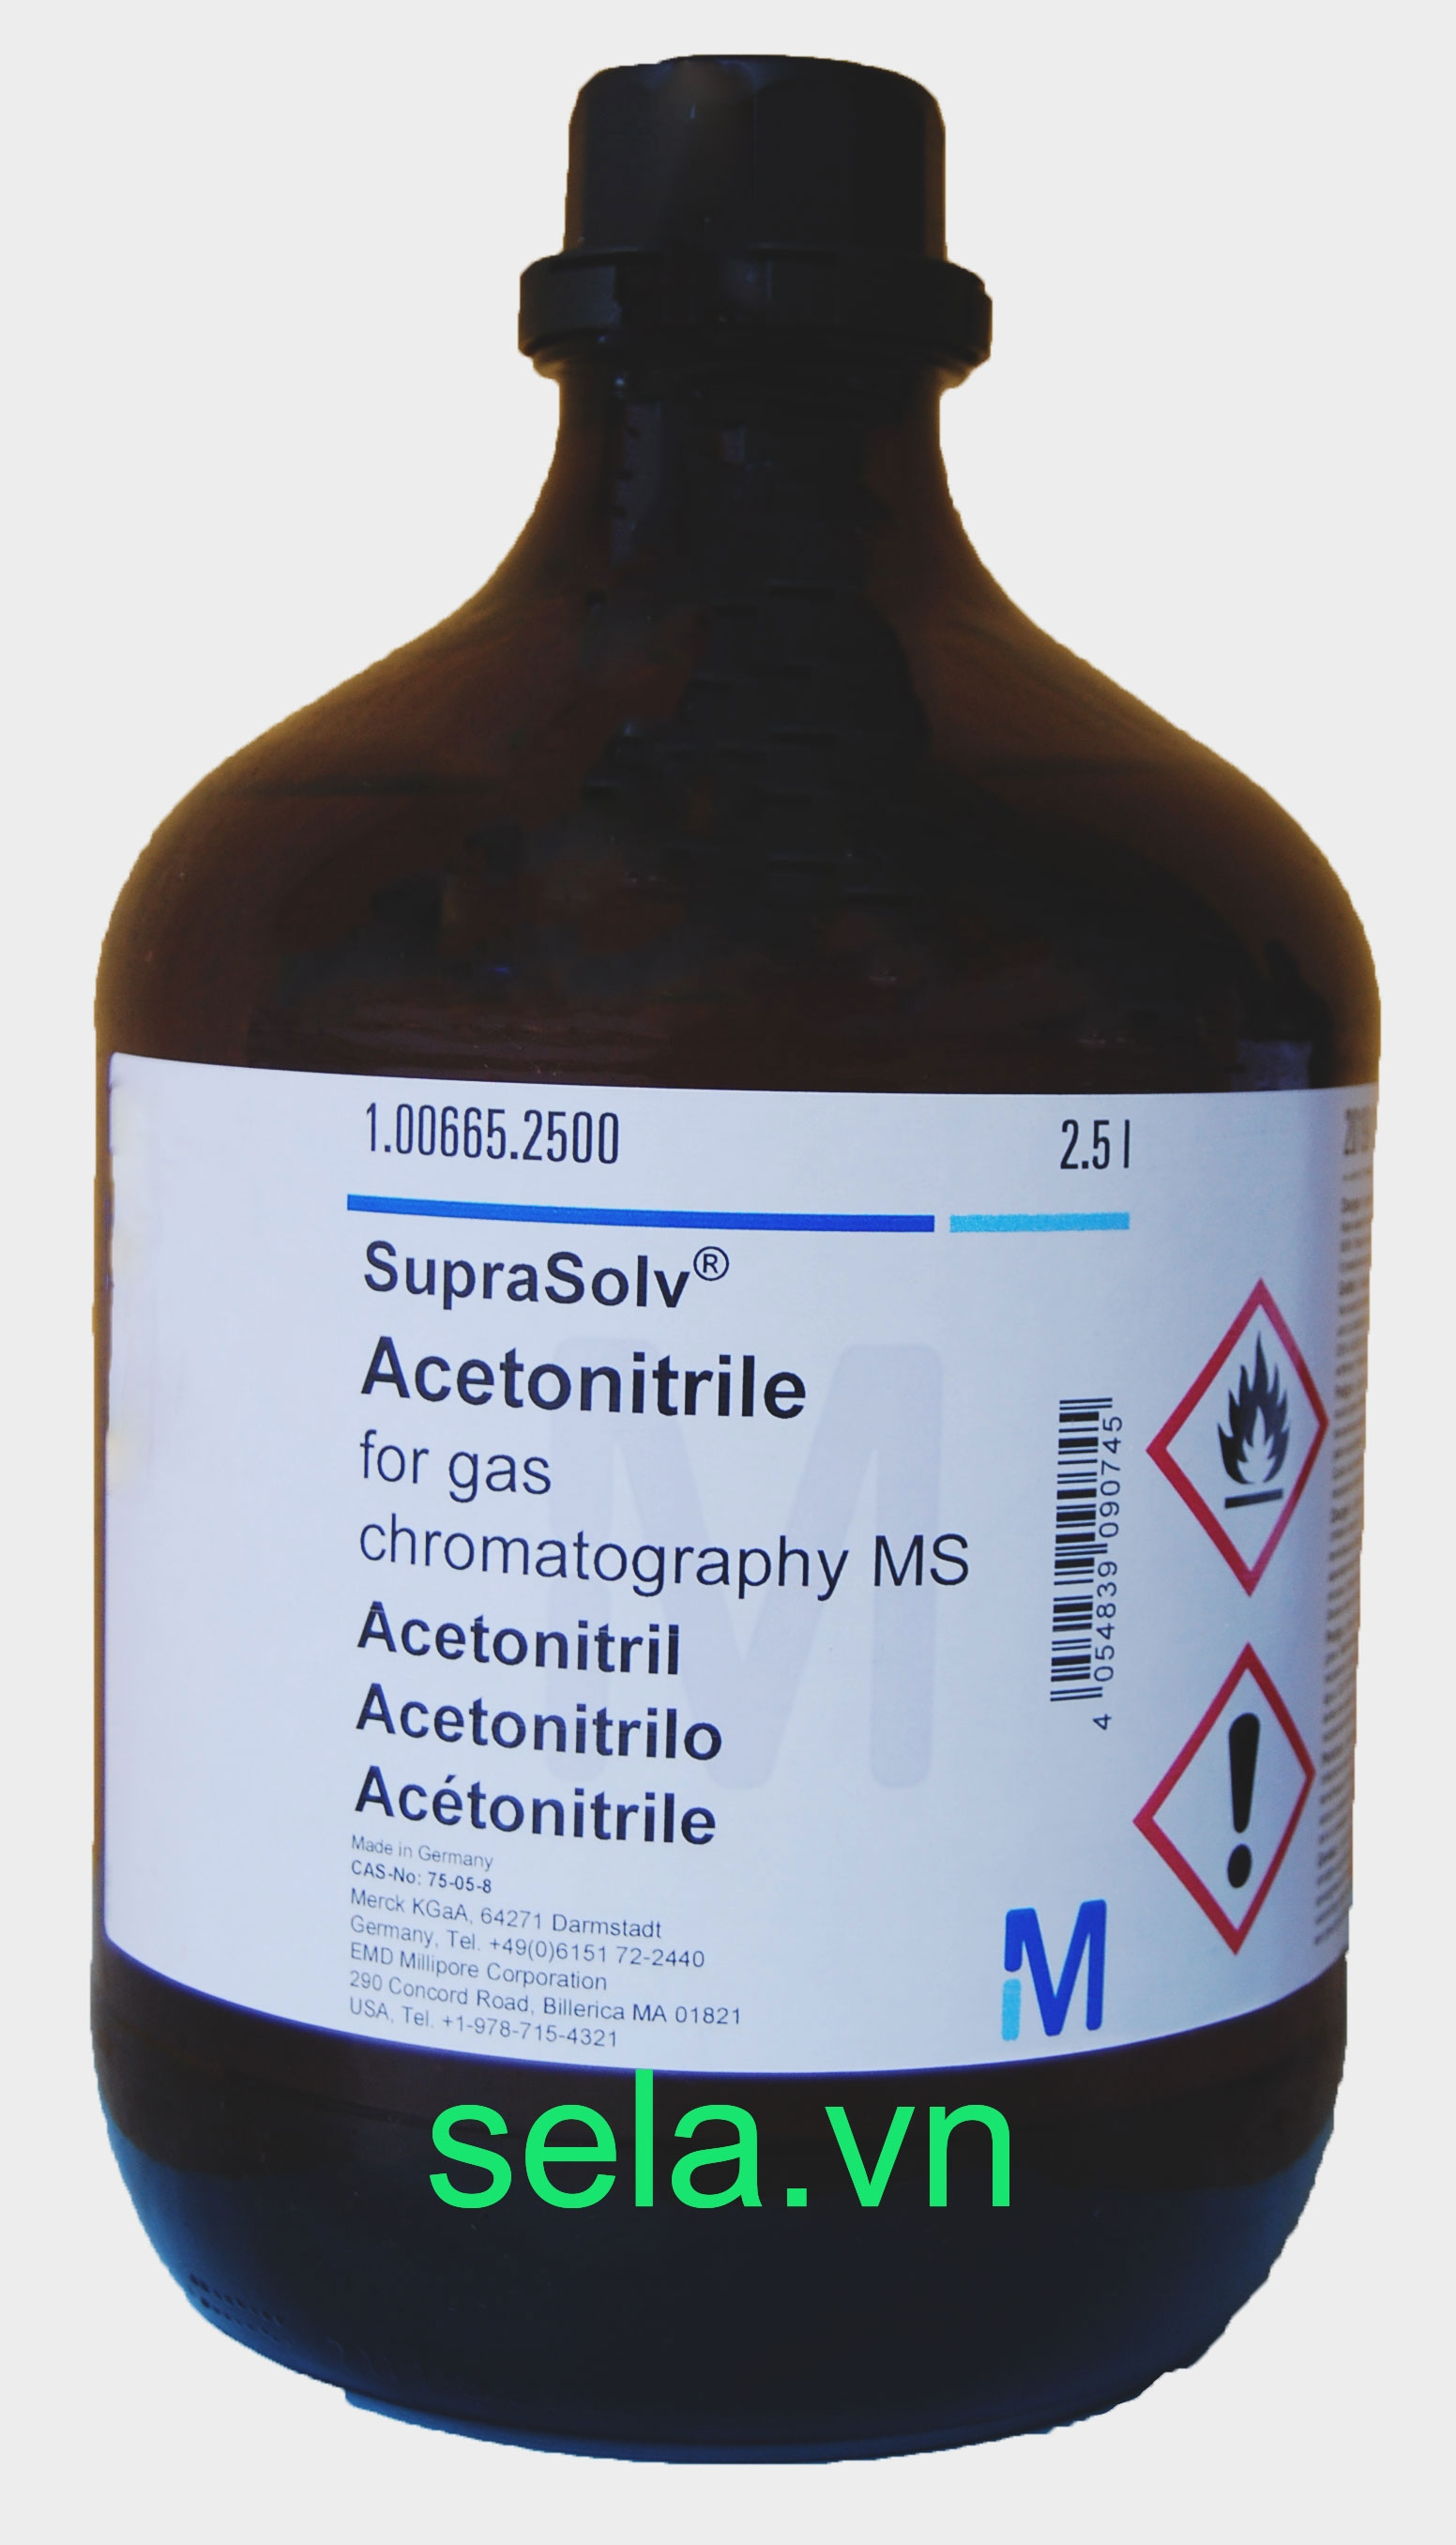 Acetonitrile for gas chromatography MS SupraSolv®